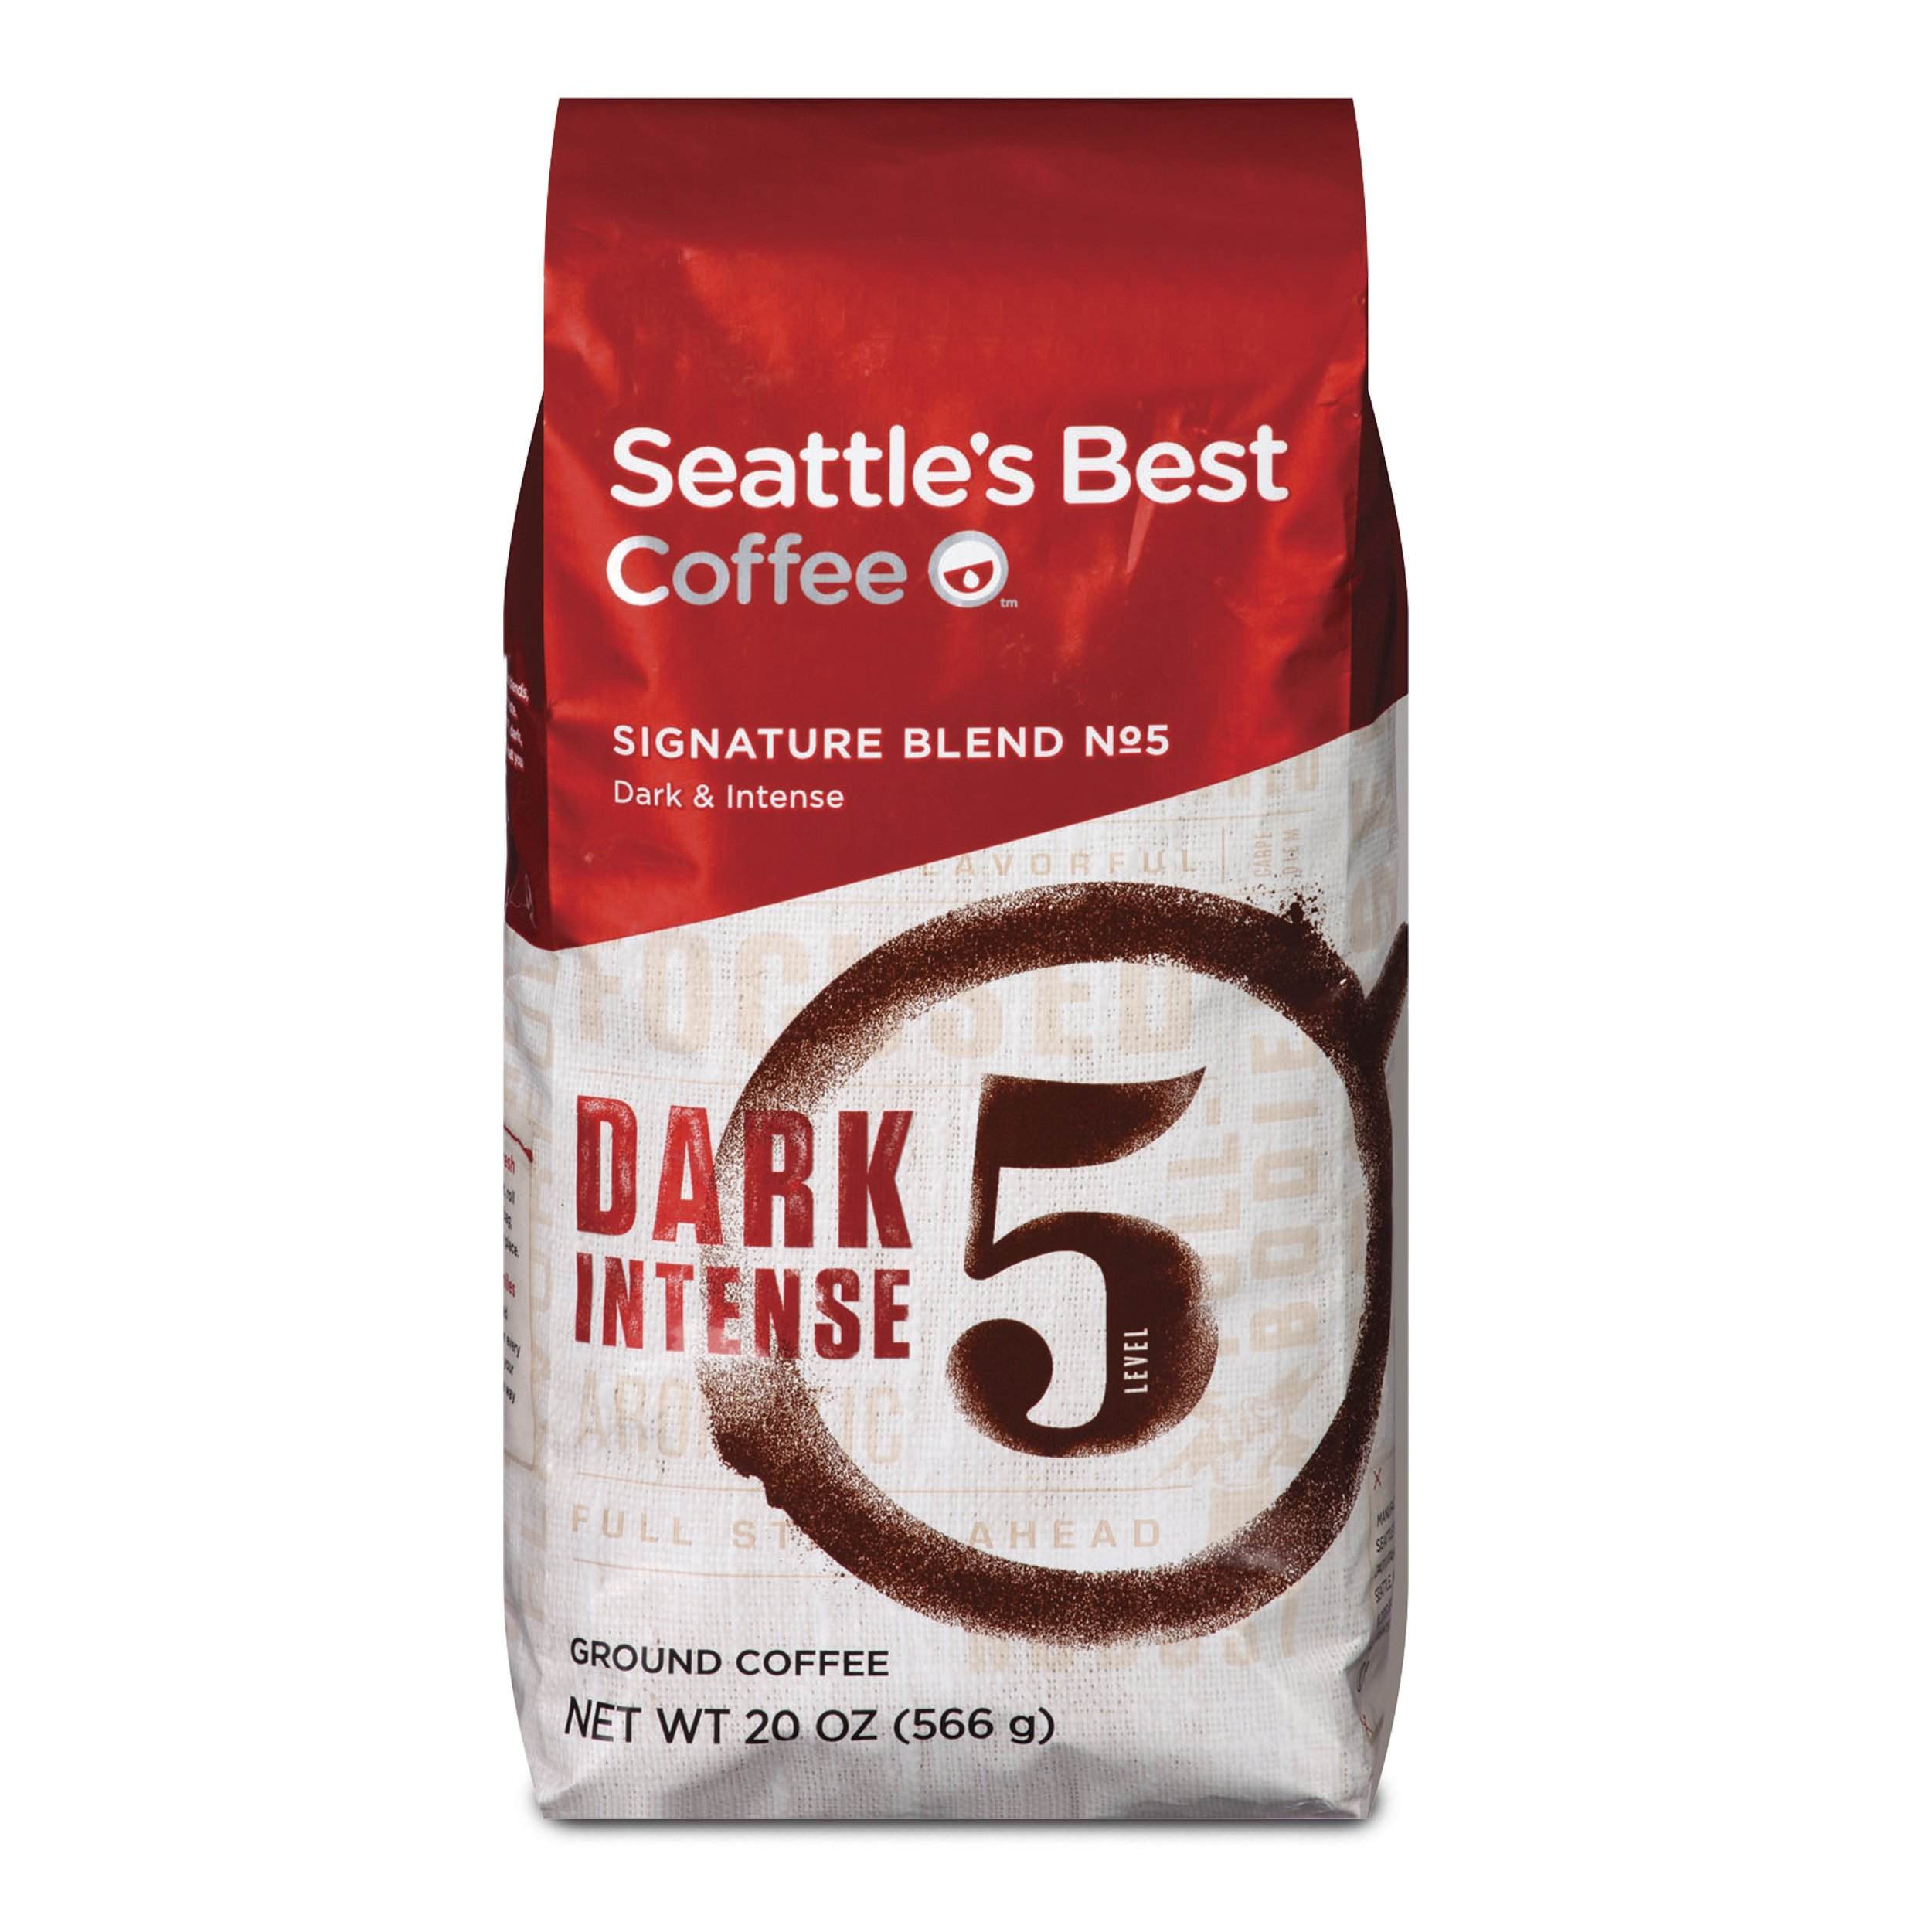 Seattle's Best Coffee Post Alley Blend (Previously Signature Blend No. 5) Dark Roast Ground Coffee, 20-Ounce Bag (Pack of 6)